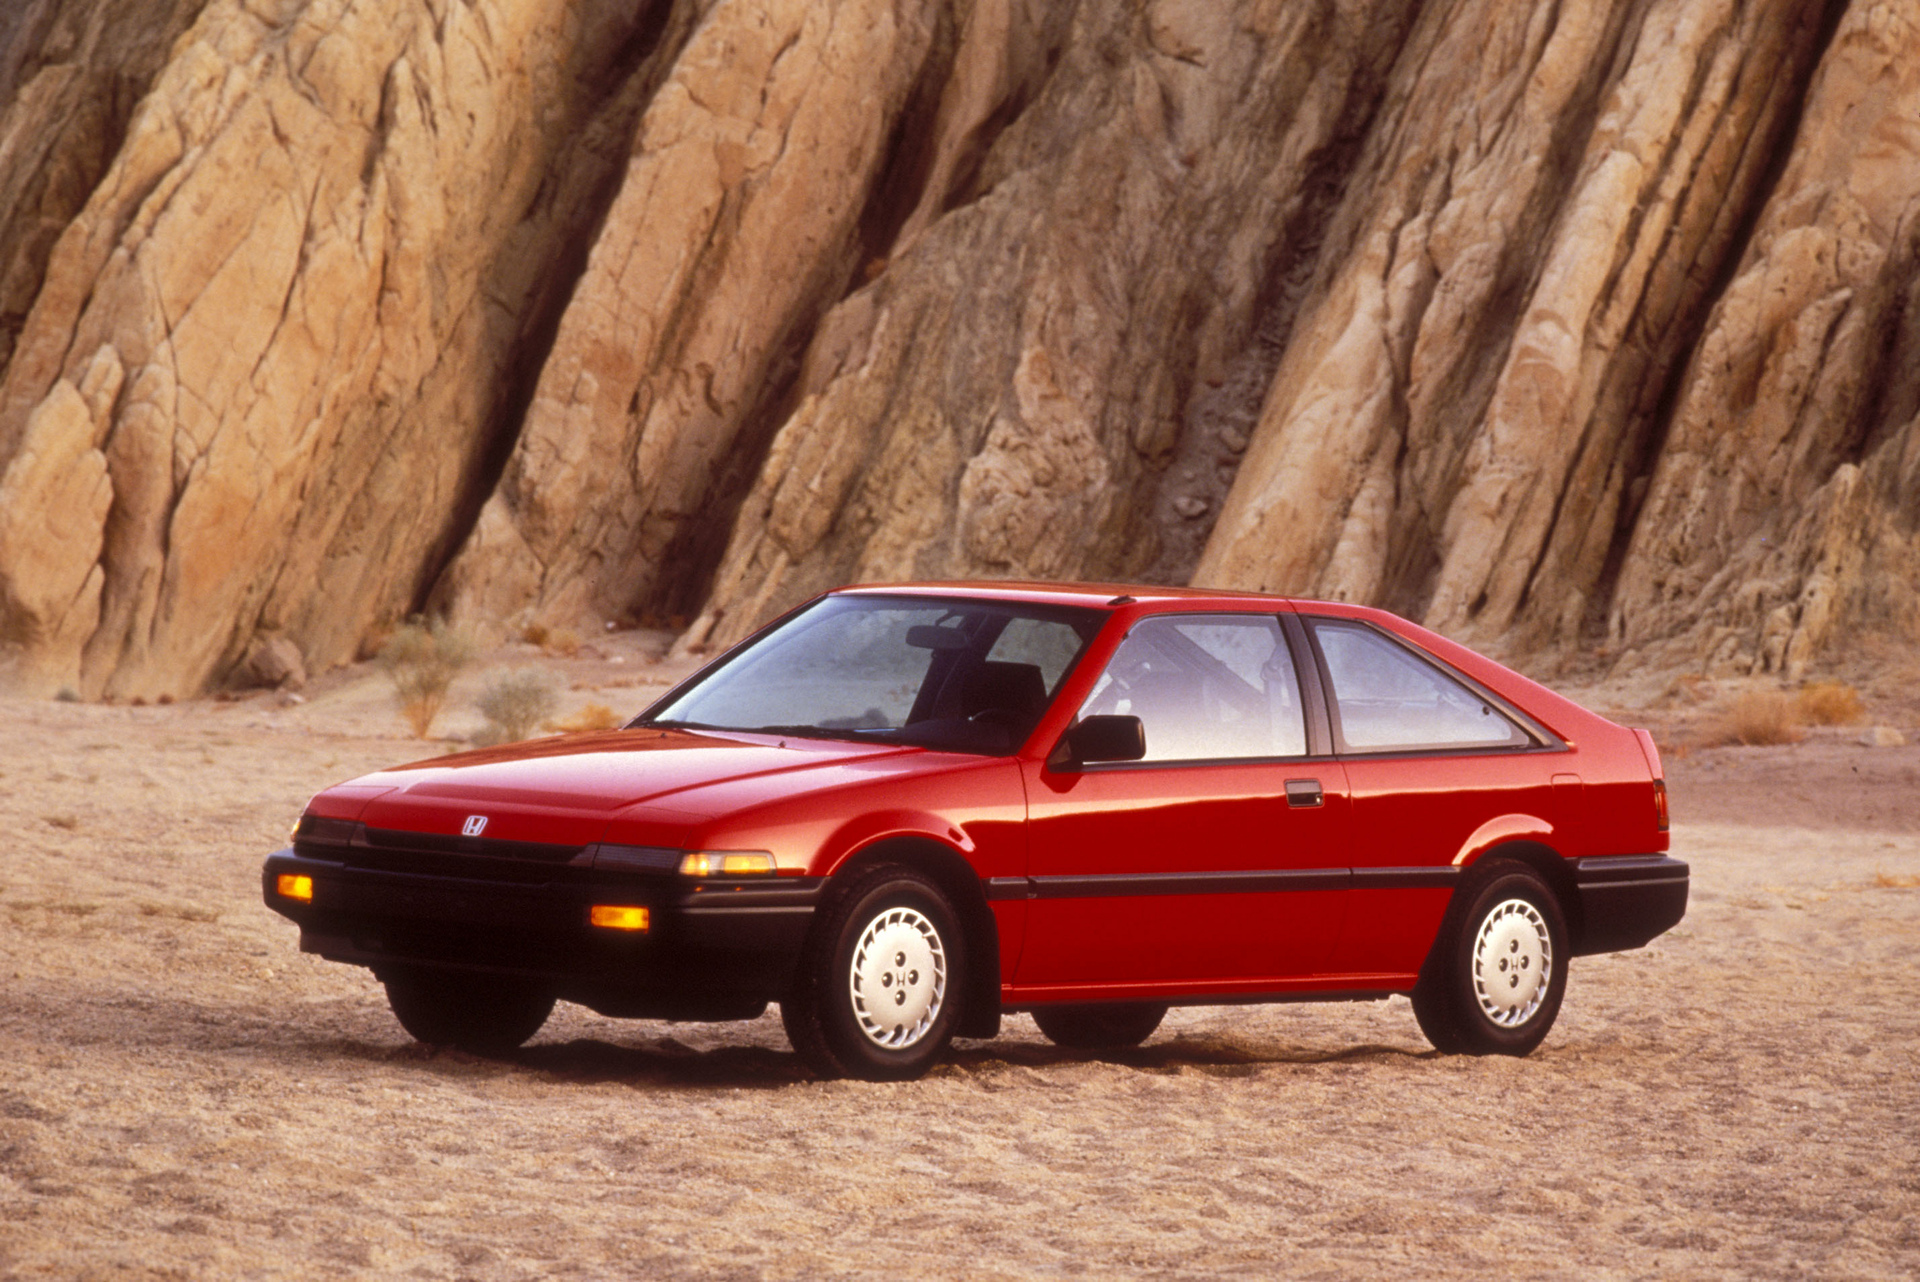 1986 Accord 3rd Generation © Honda Motor Co., Ltd.